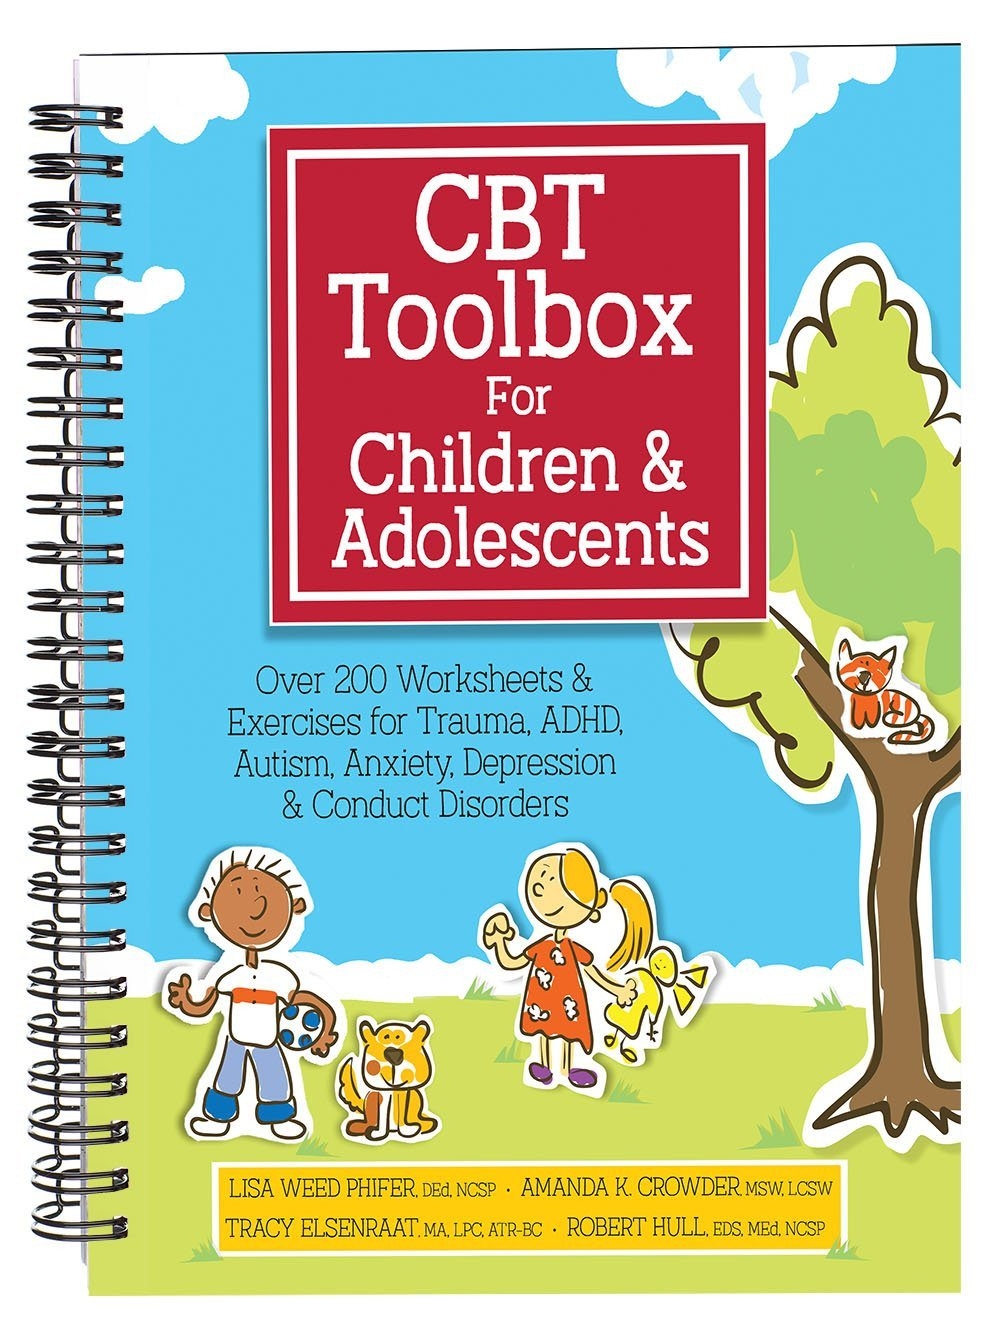 Social Skills Making Friends Worksheets Amazon Cbt toolbox for Children and Adolescents Over